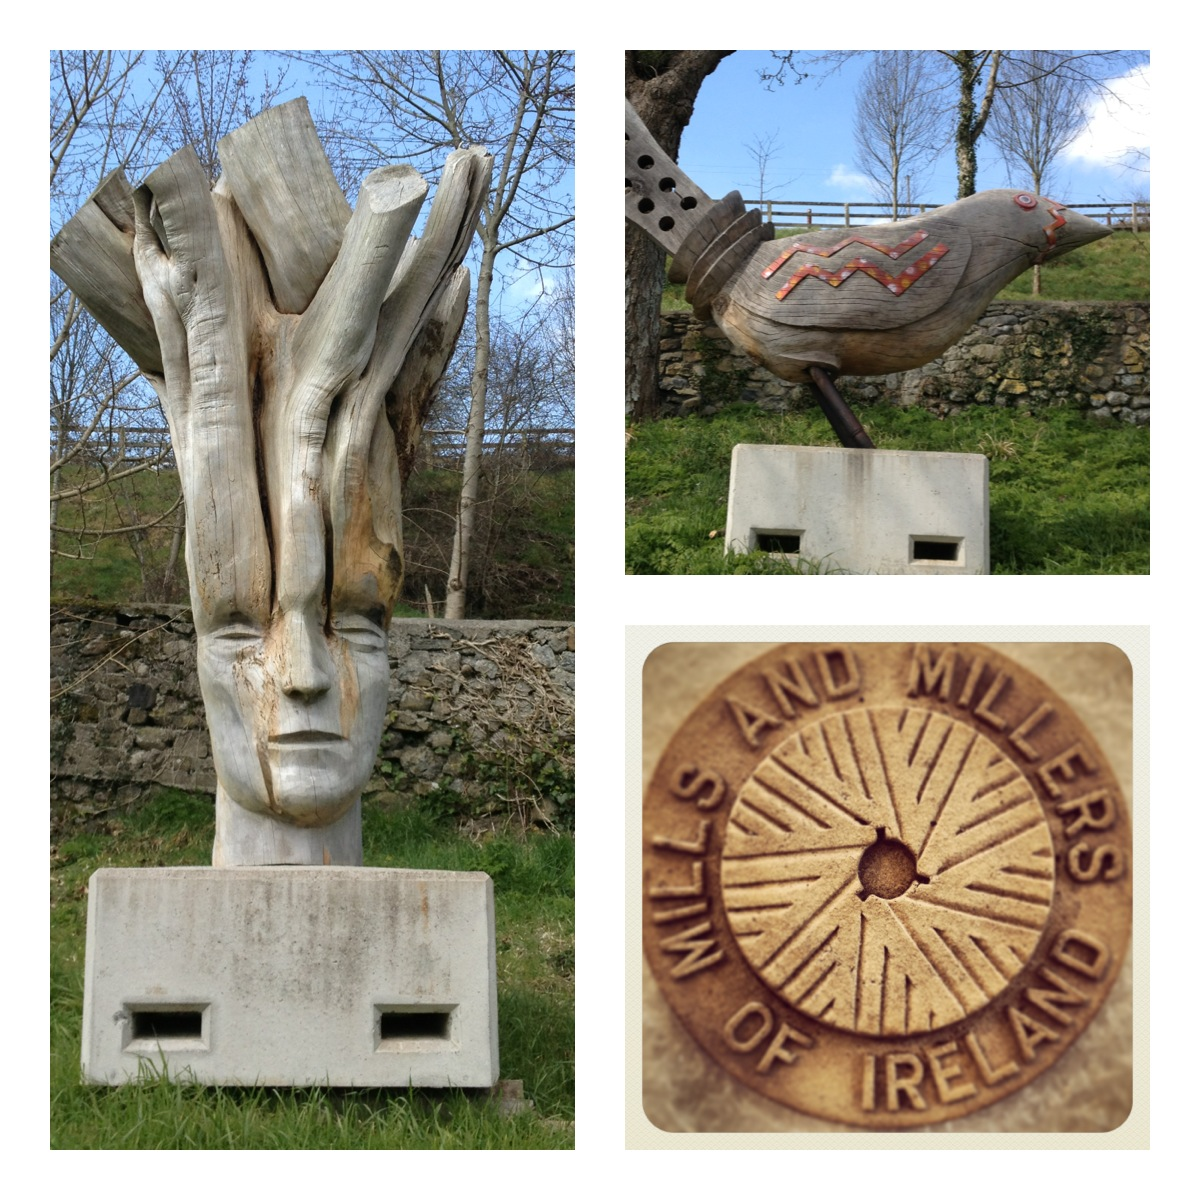 Handmade timber sculptures and Mills and Millers plaque